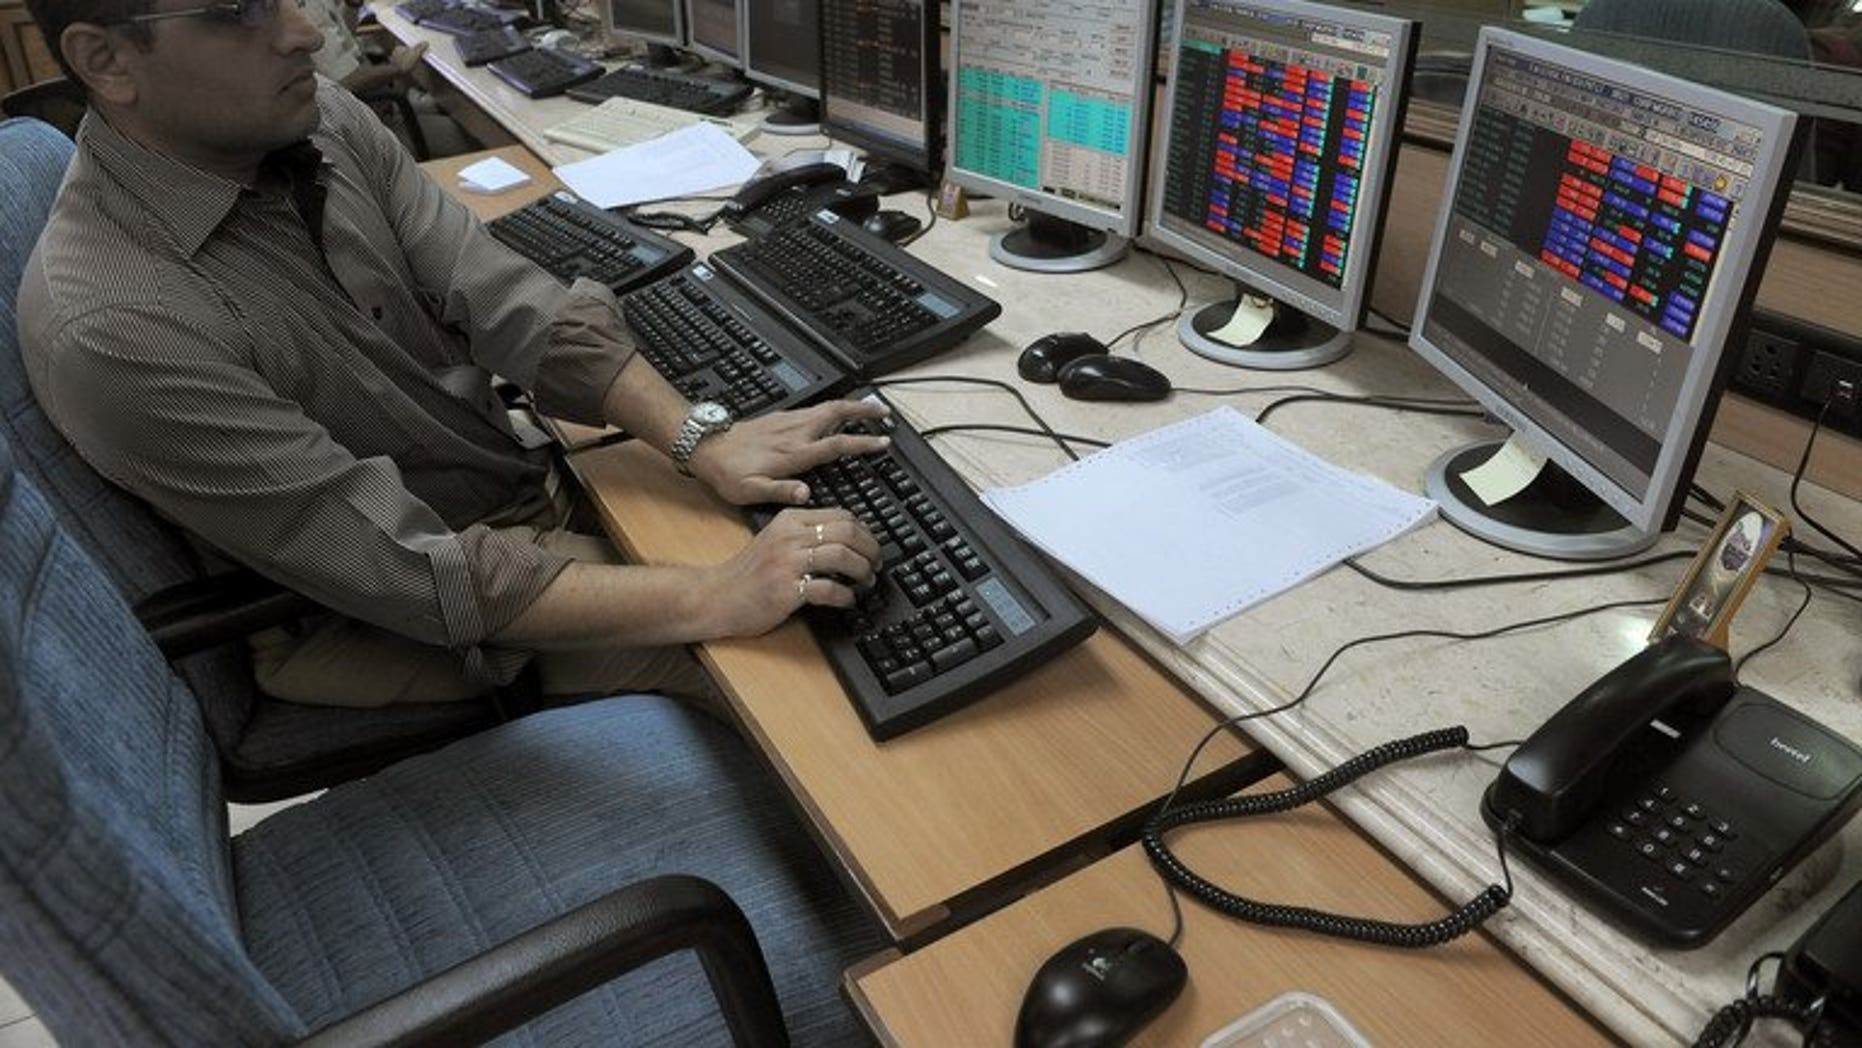 An Indian stockbroker watches share prices on trading terminals at a brokerage house in Mumbai on October 4, 2012. India's market regulator on Tuesday announced an overhaul of existing regulations for foreign investors, in a bid to attract crucial inflows to the country's capital markets.